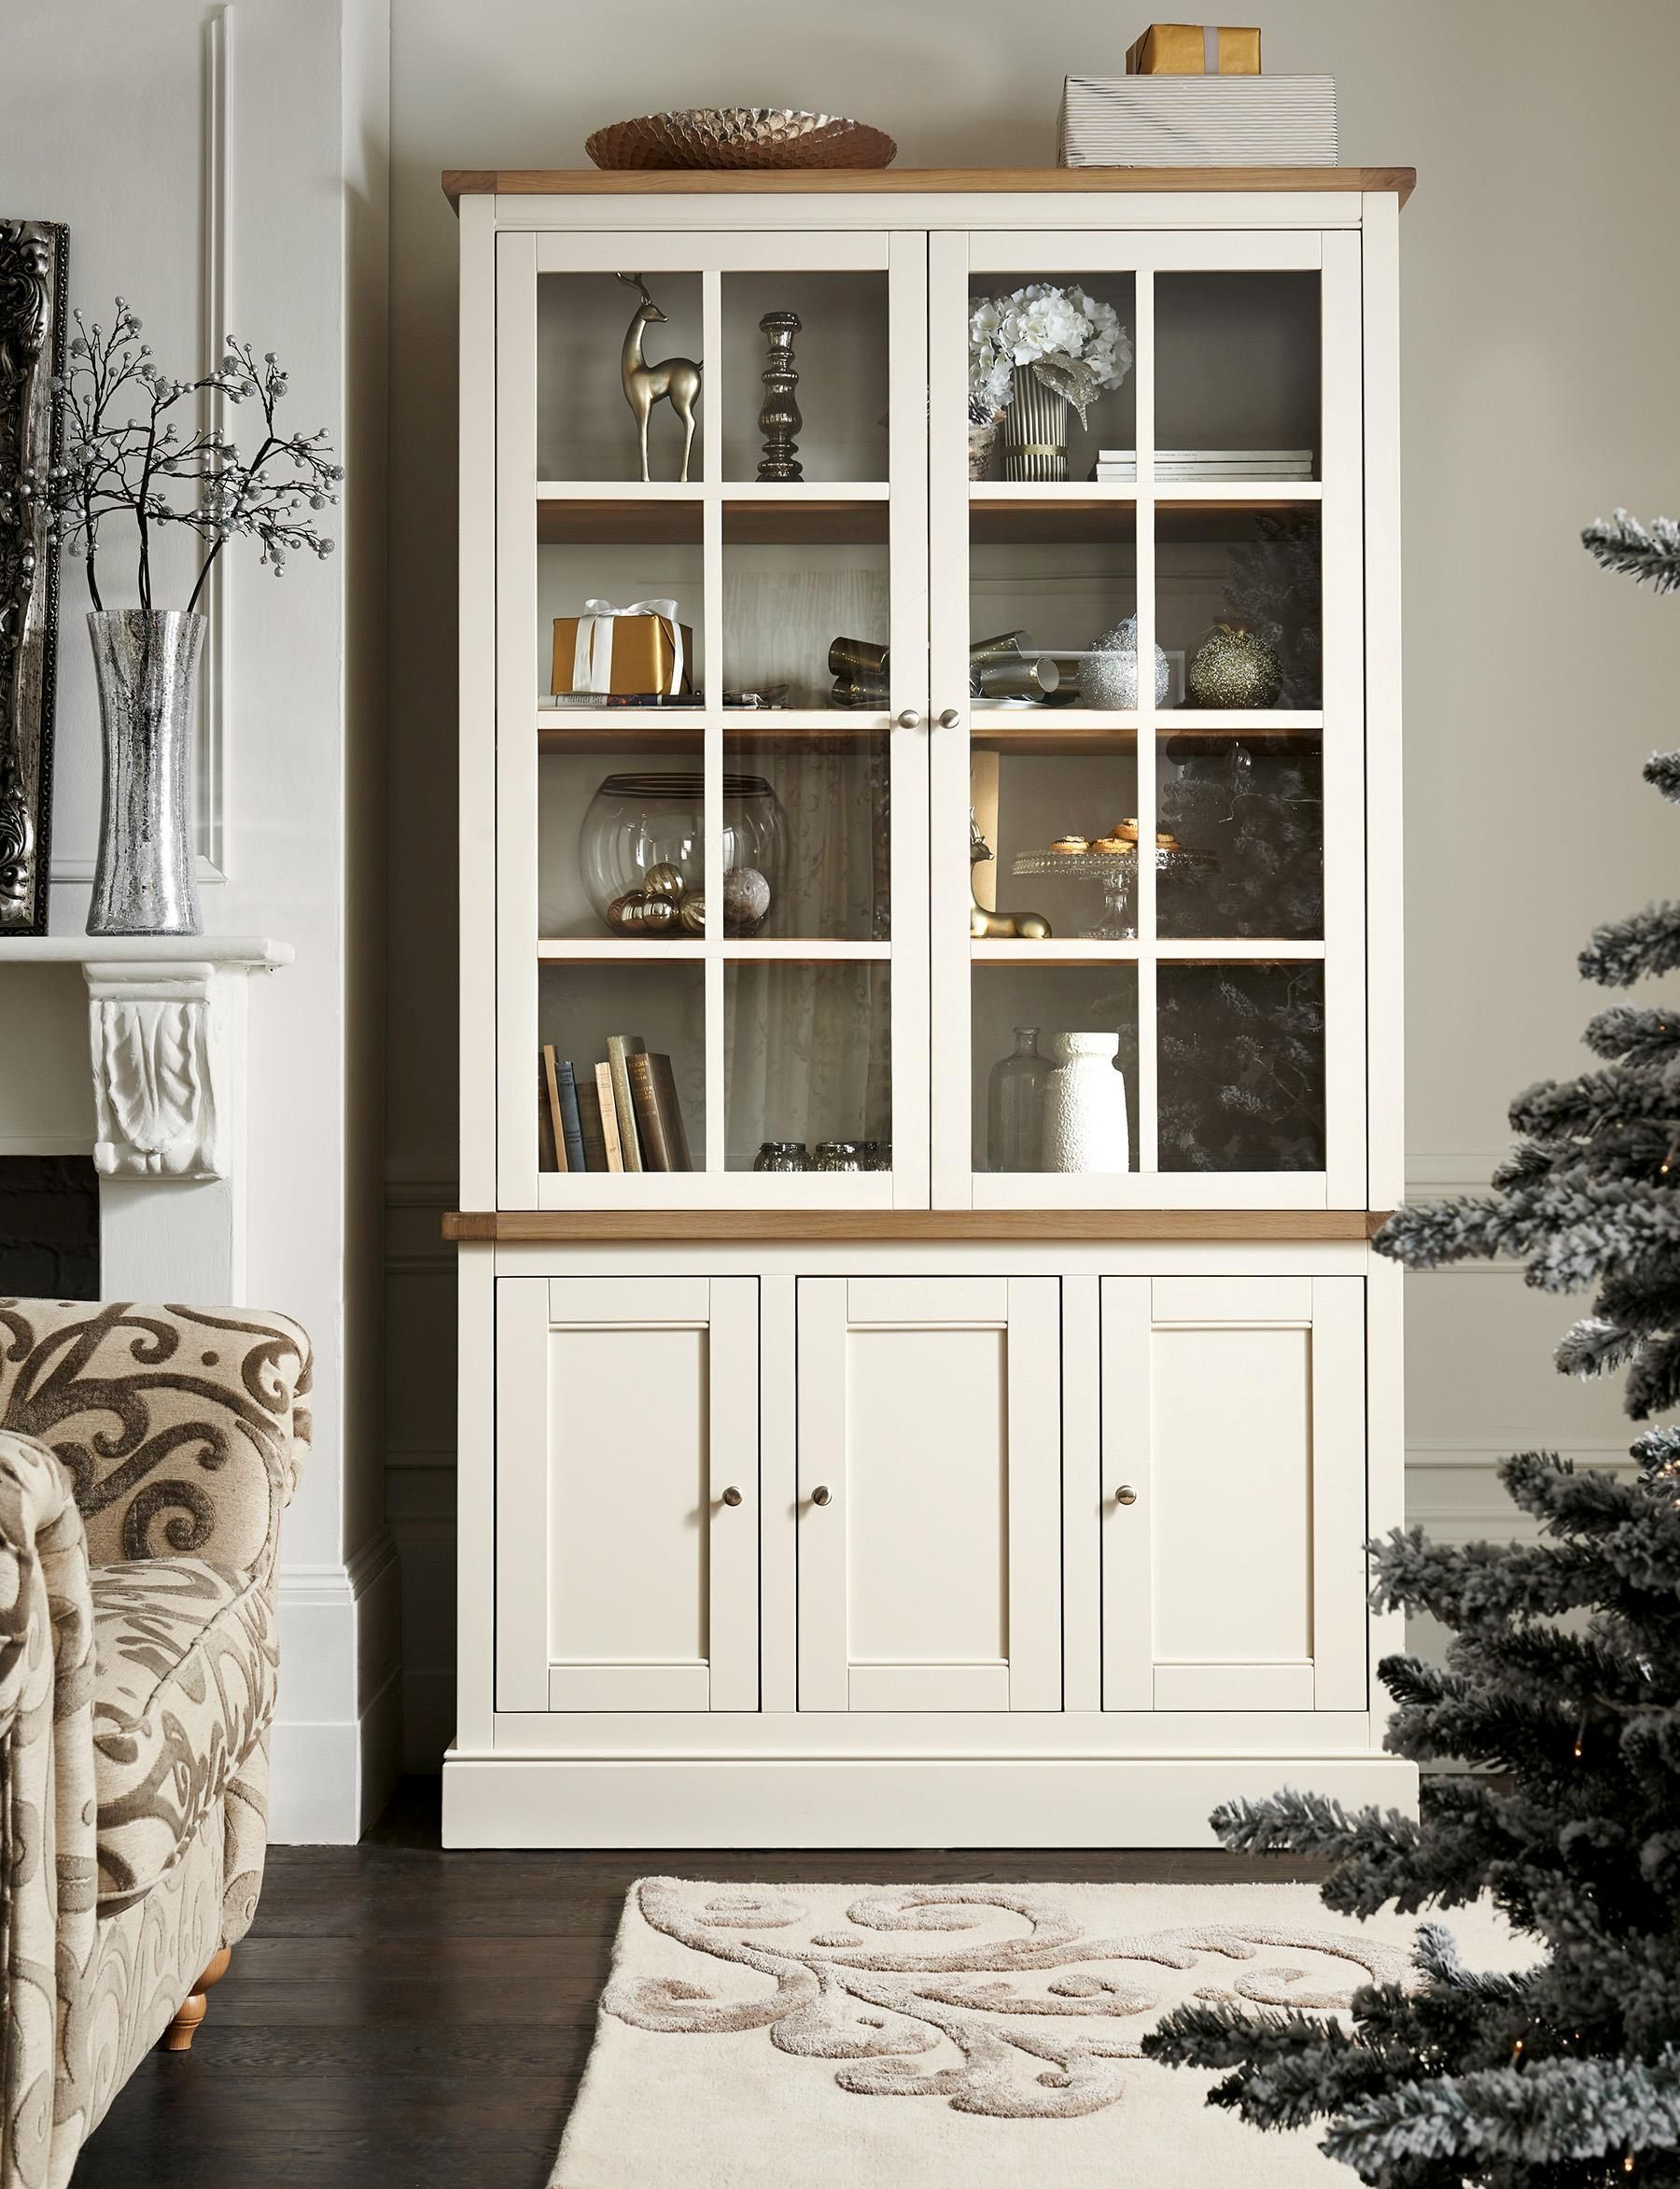 Shaftesbury Painted Glazed Display Unit from Next | Muebles ...